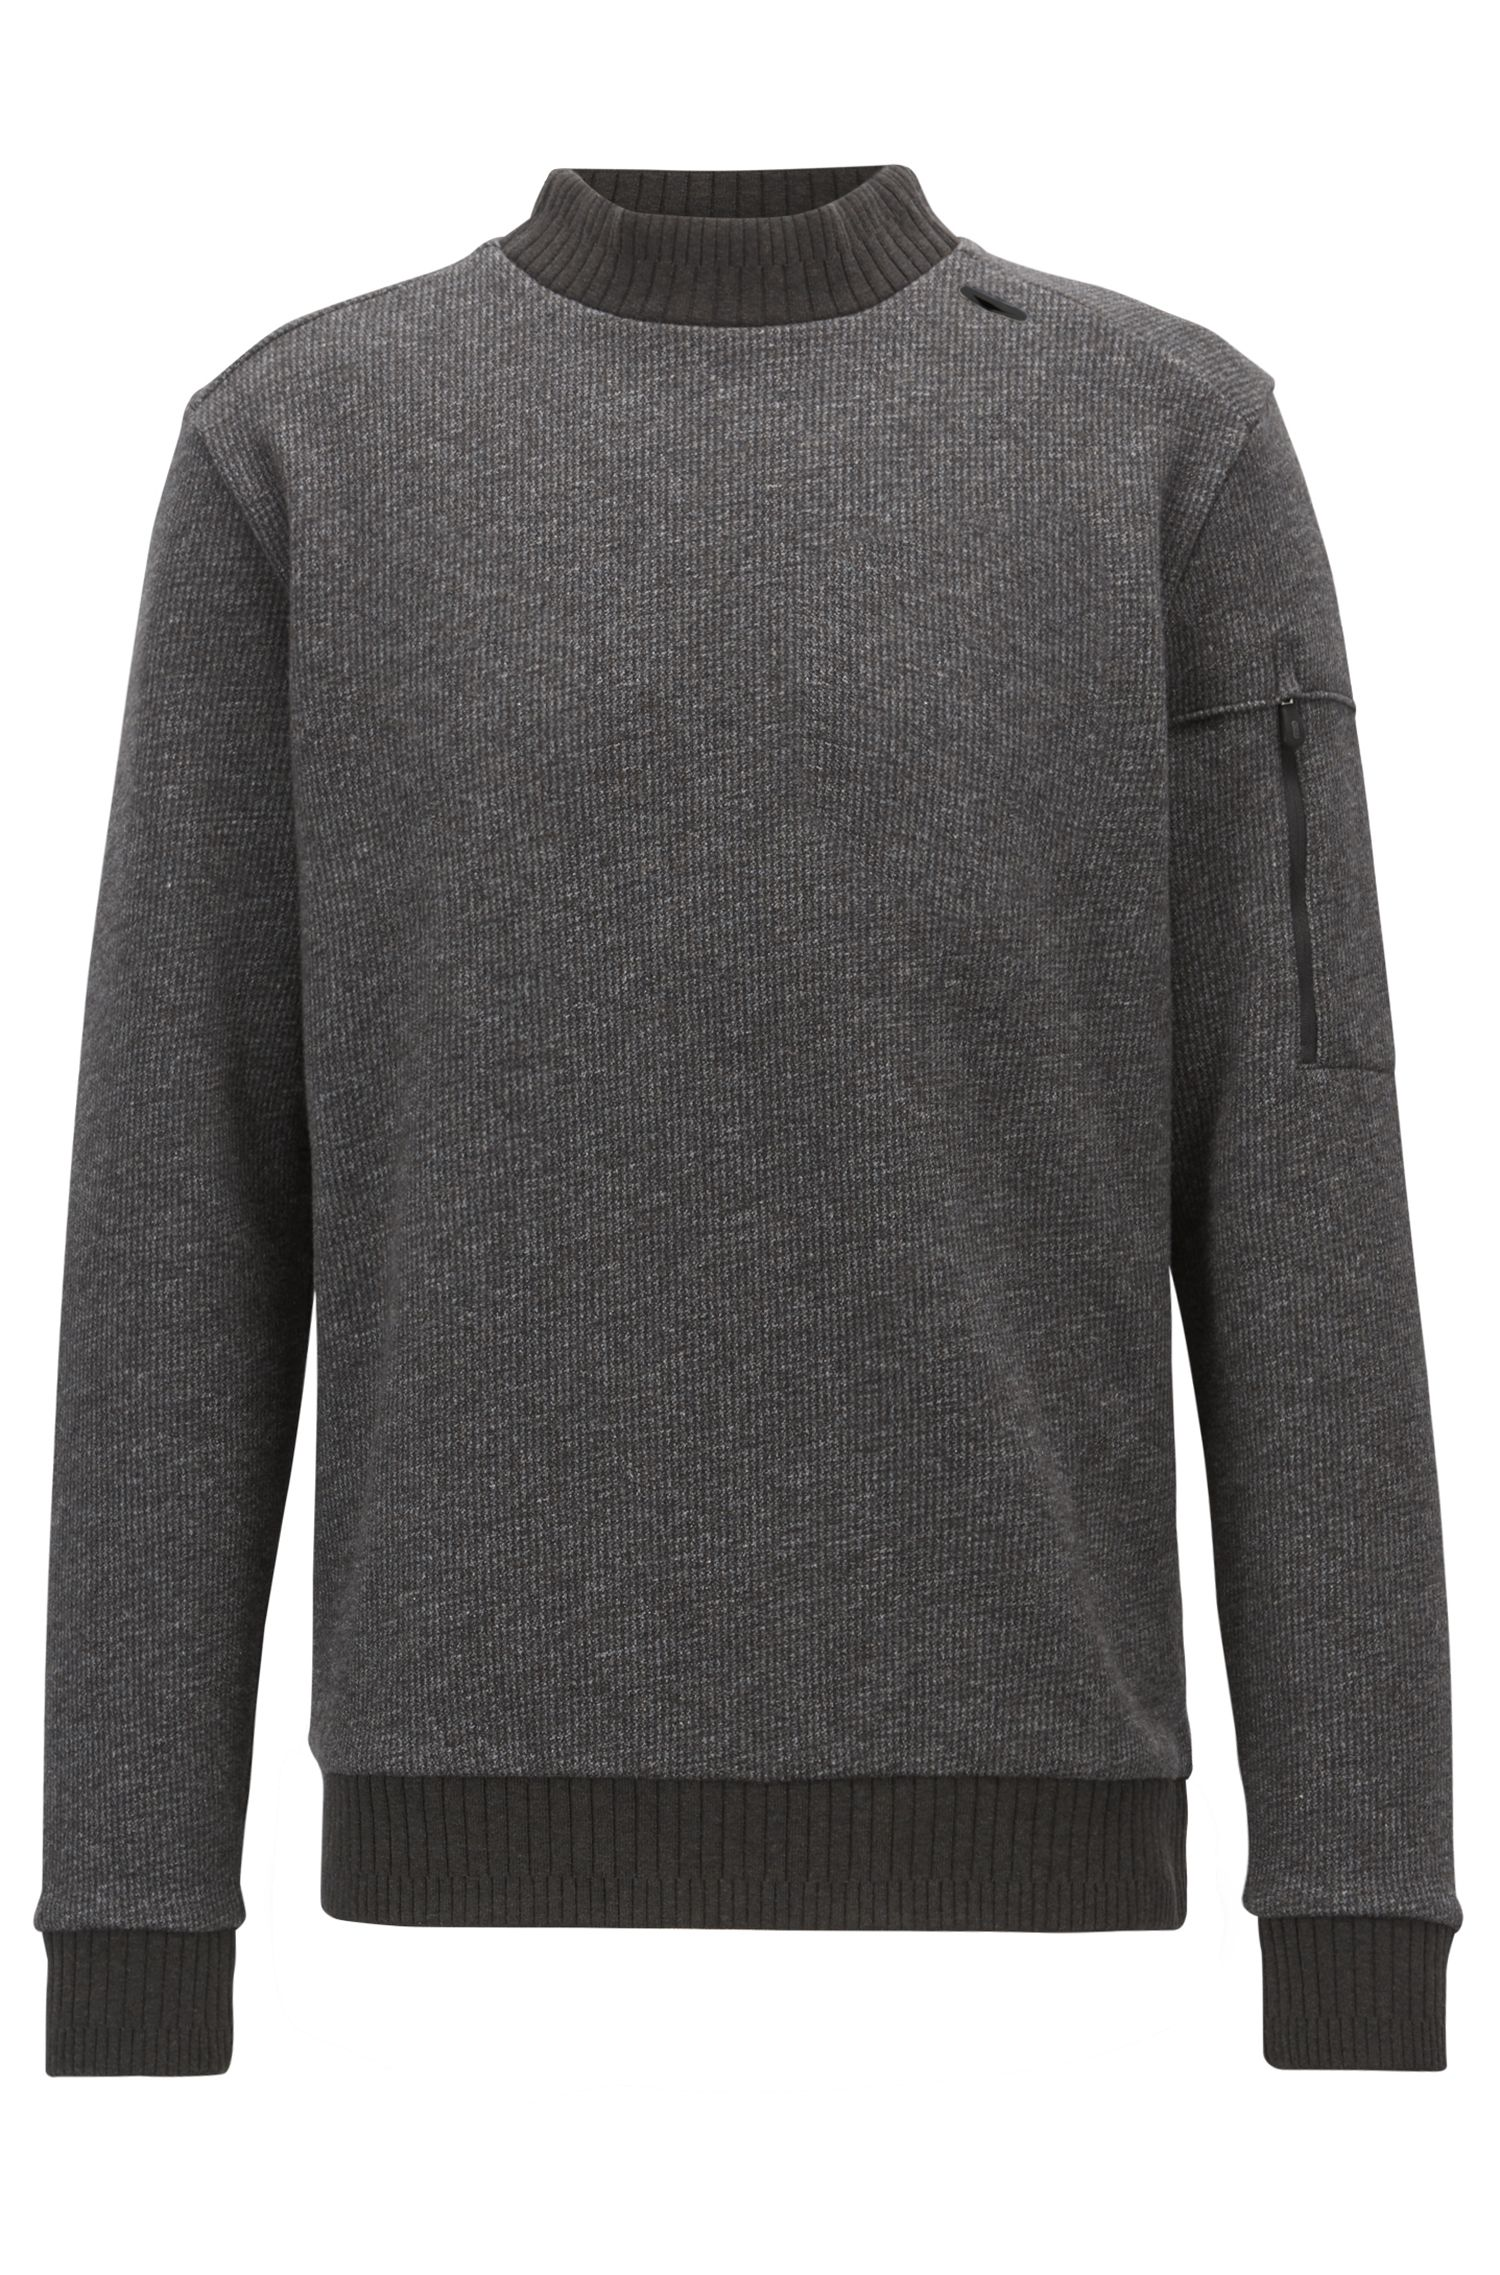 Turtleneck sweater in double-faced cotton-blend fleece